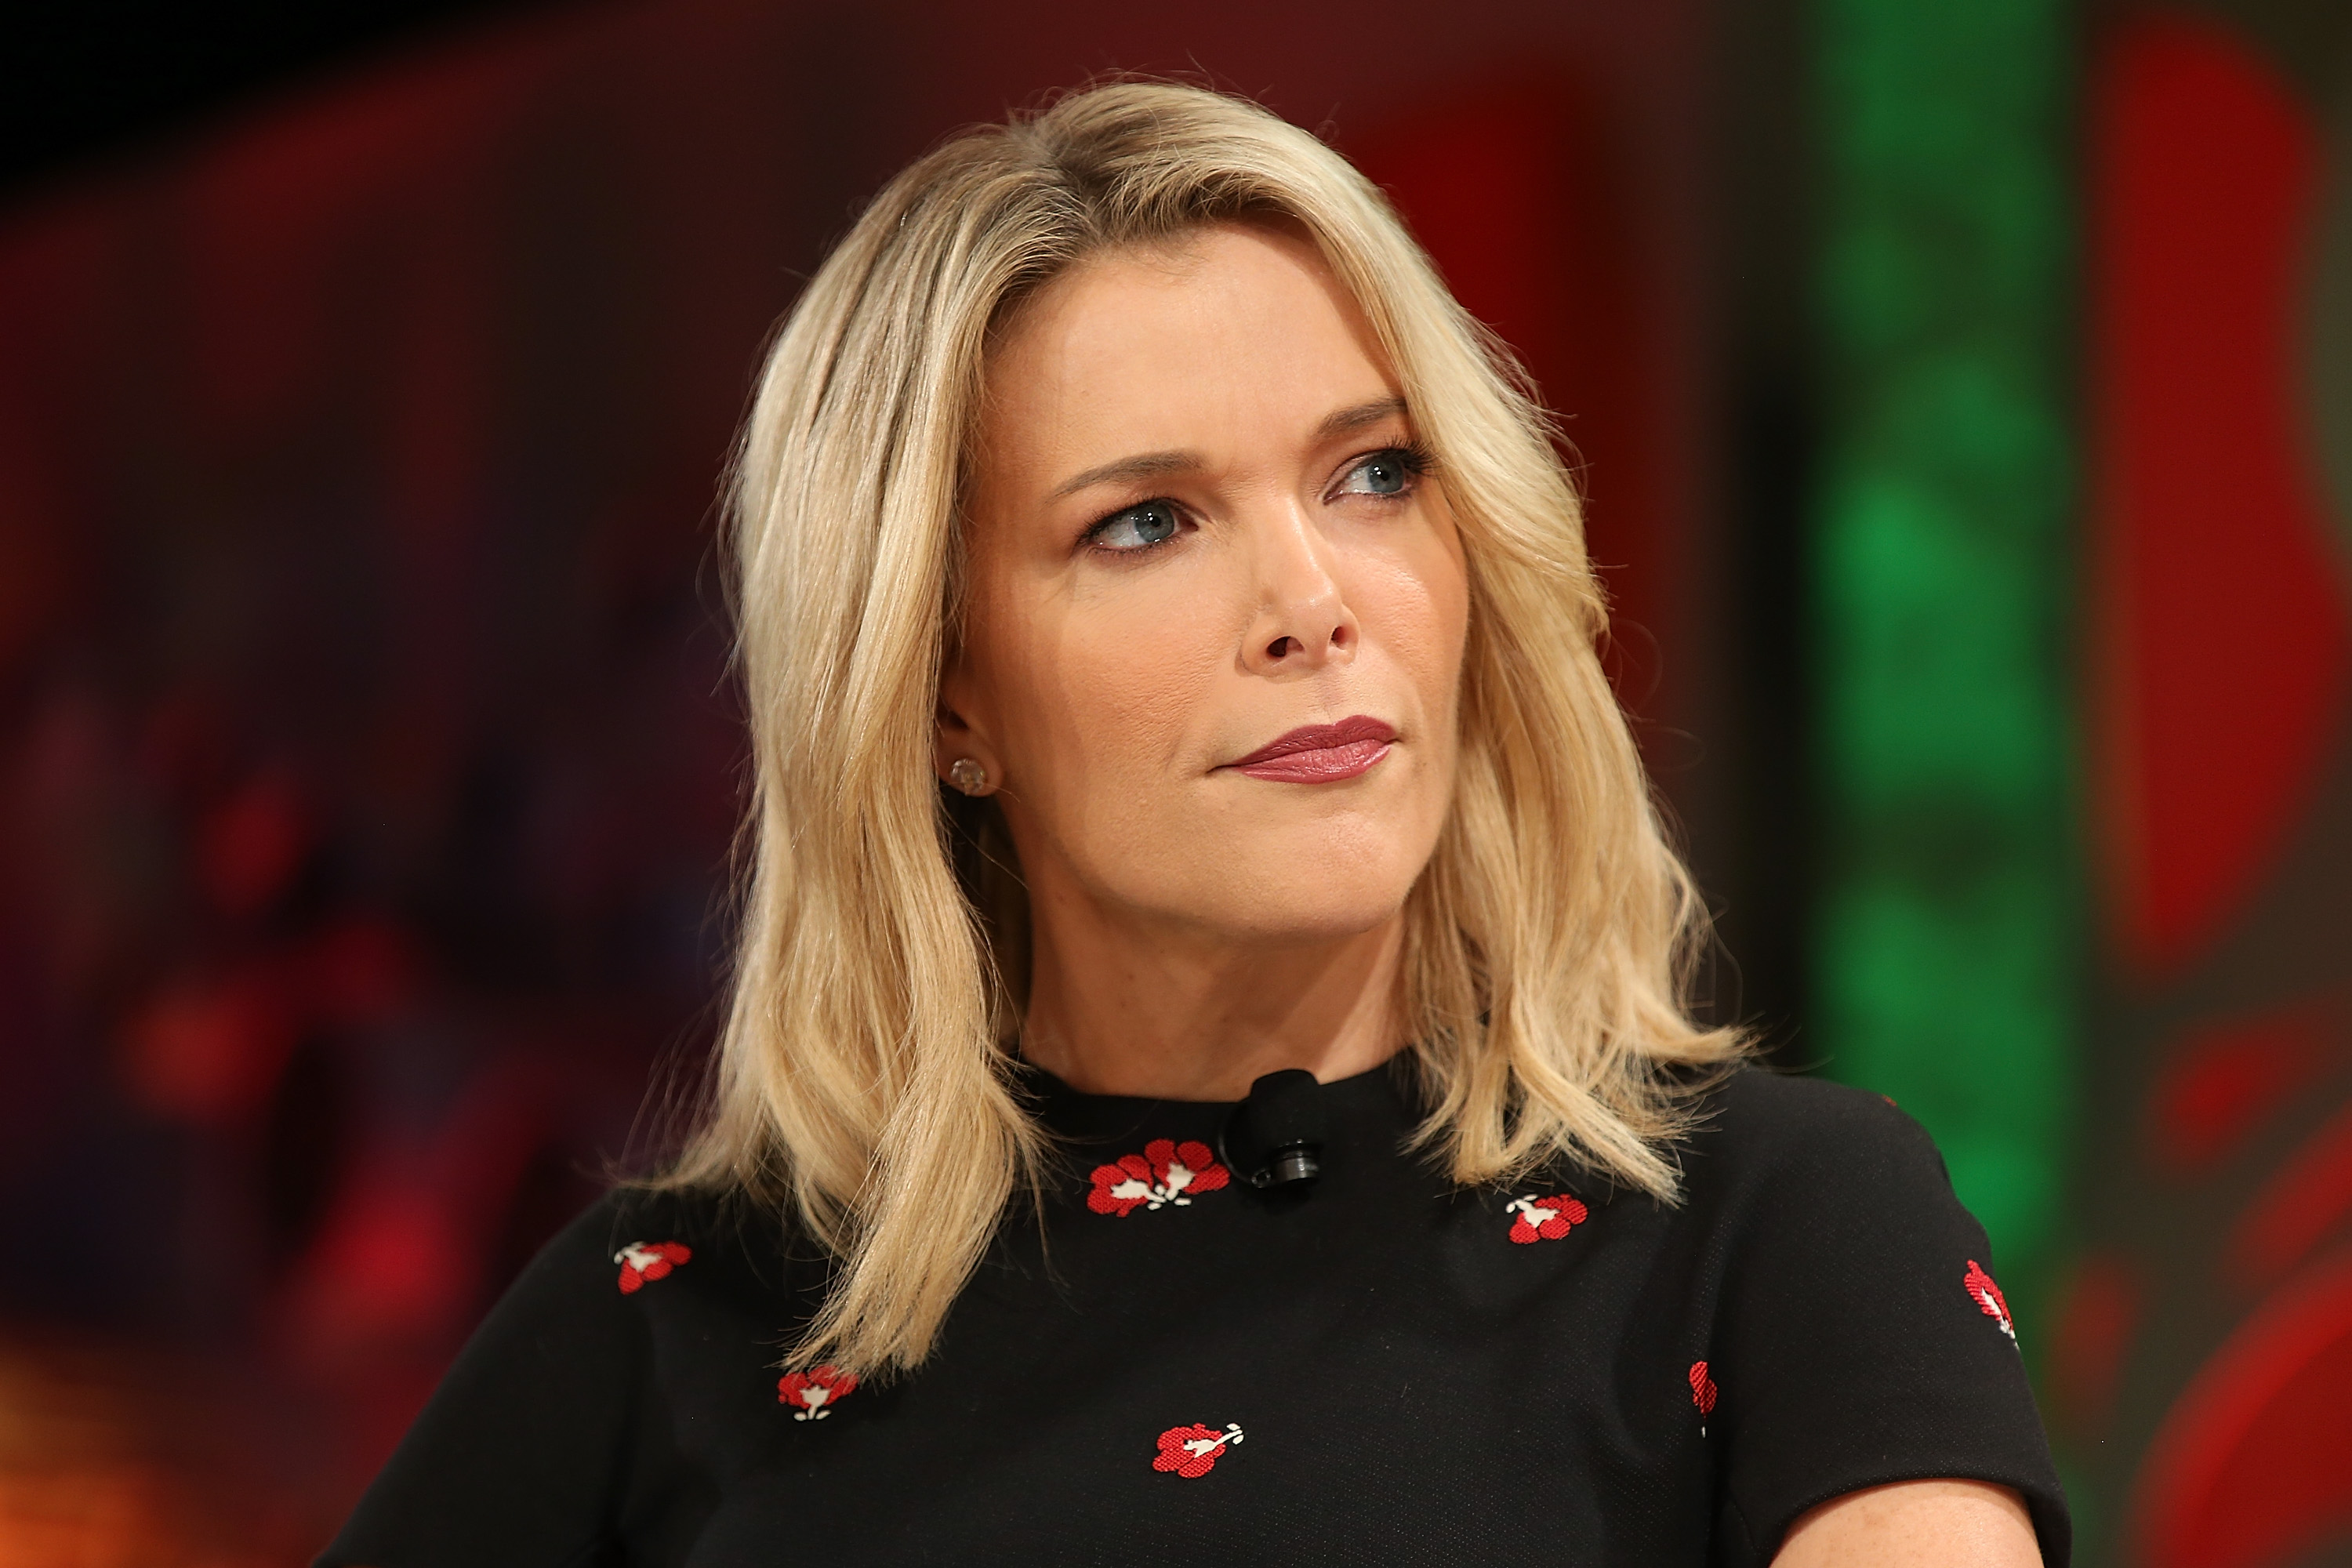 Megyn Kelly has opened up about the harassment she allegedly faced at the hands of Ailes in the recent past (Getty Images)